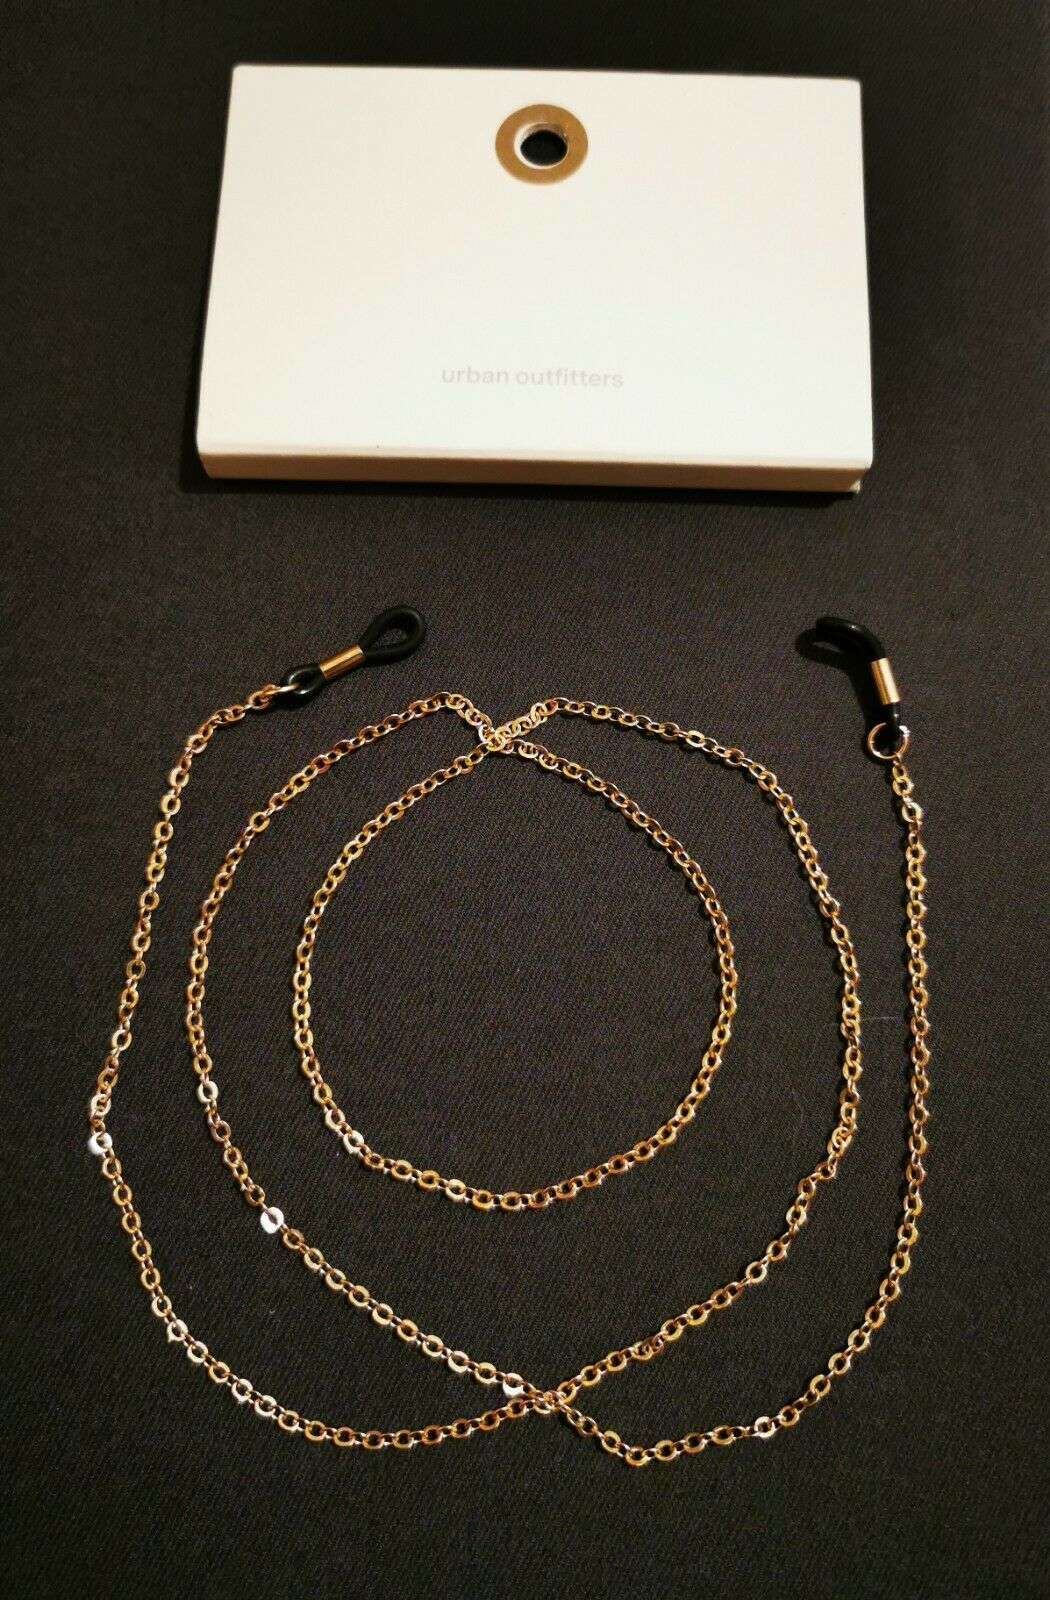 (#70) Urban Outfitters gold coloured eyeglasses chain strap. RRP